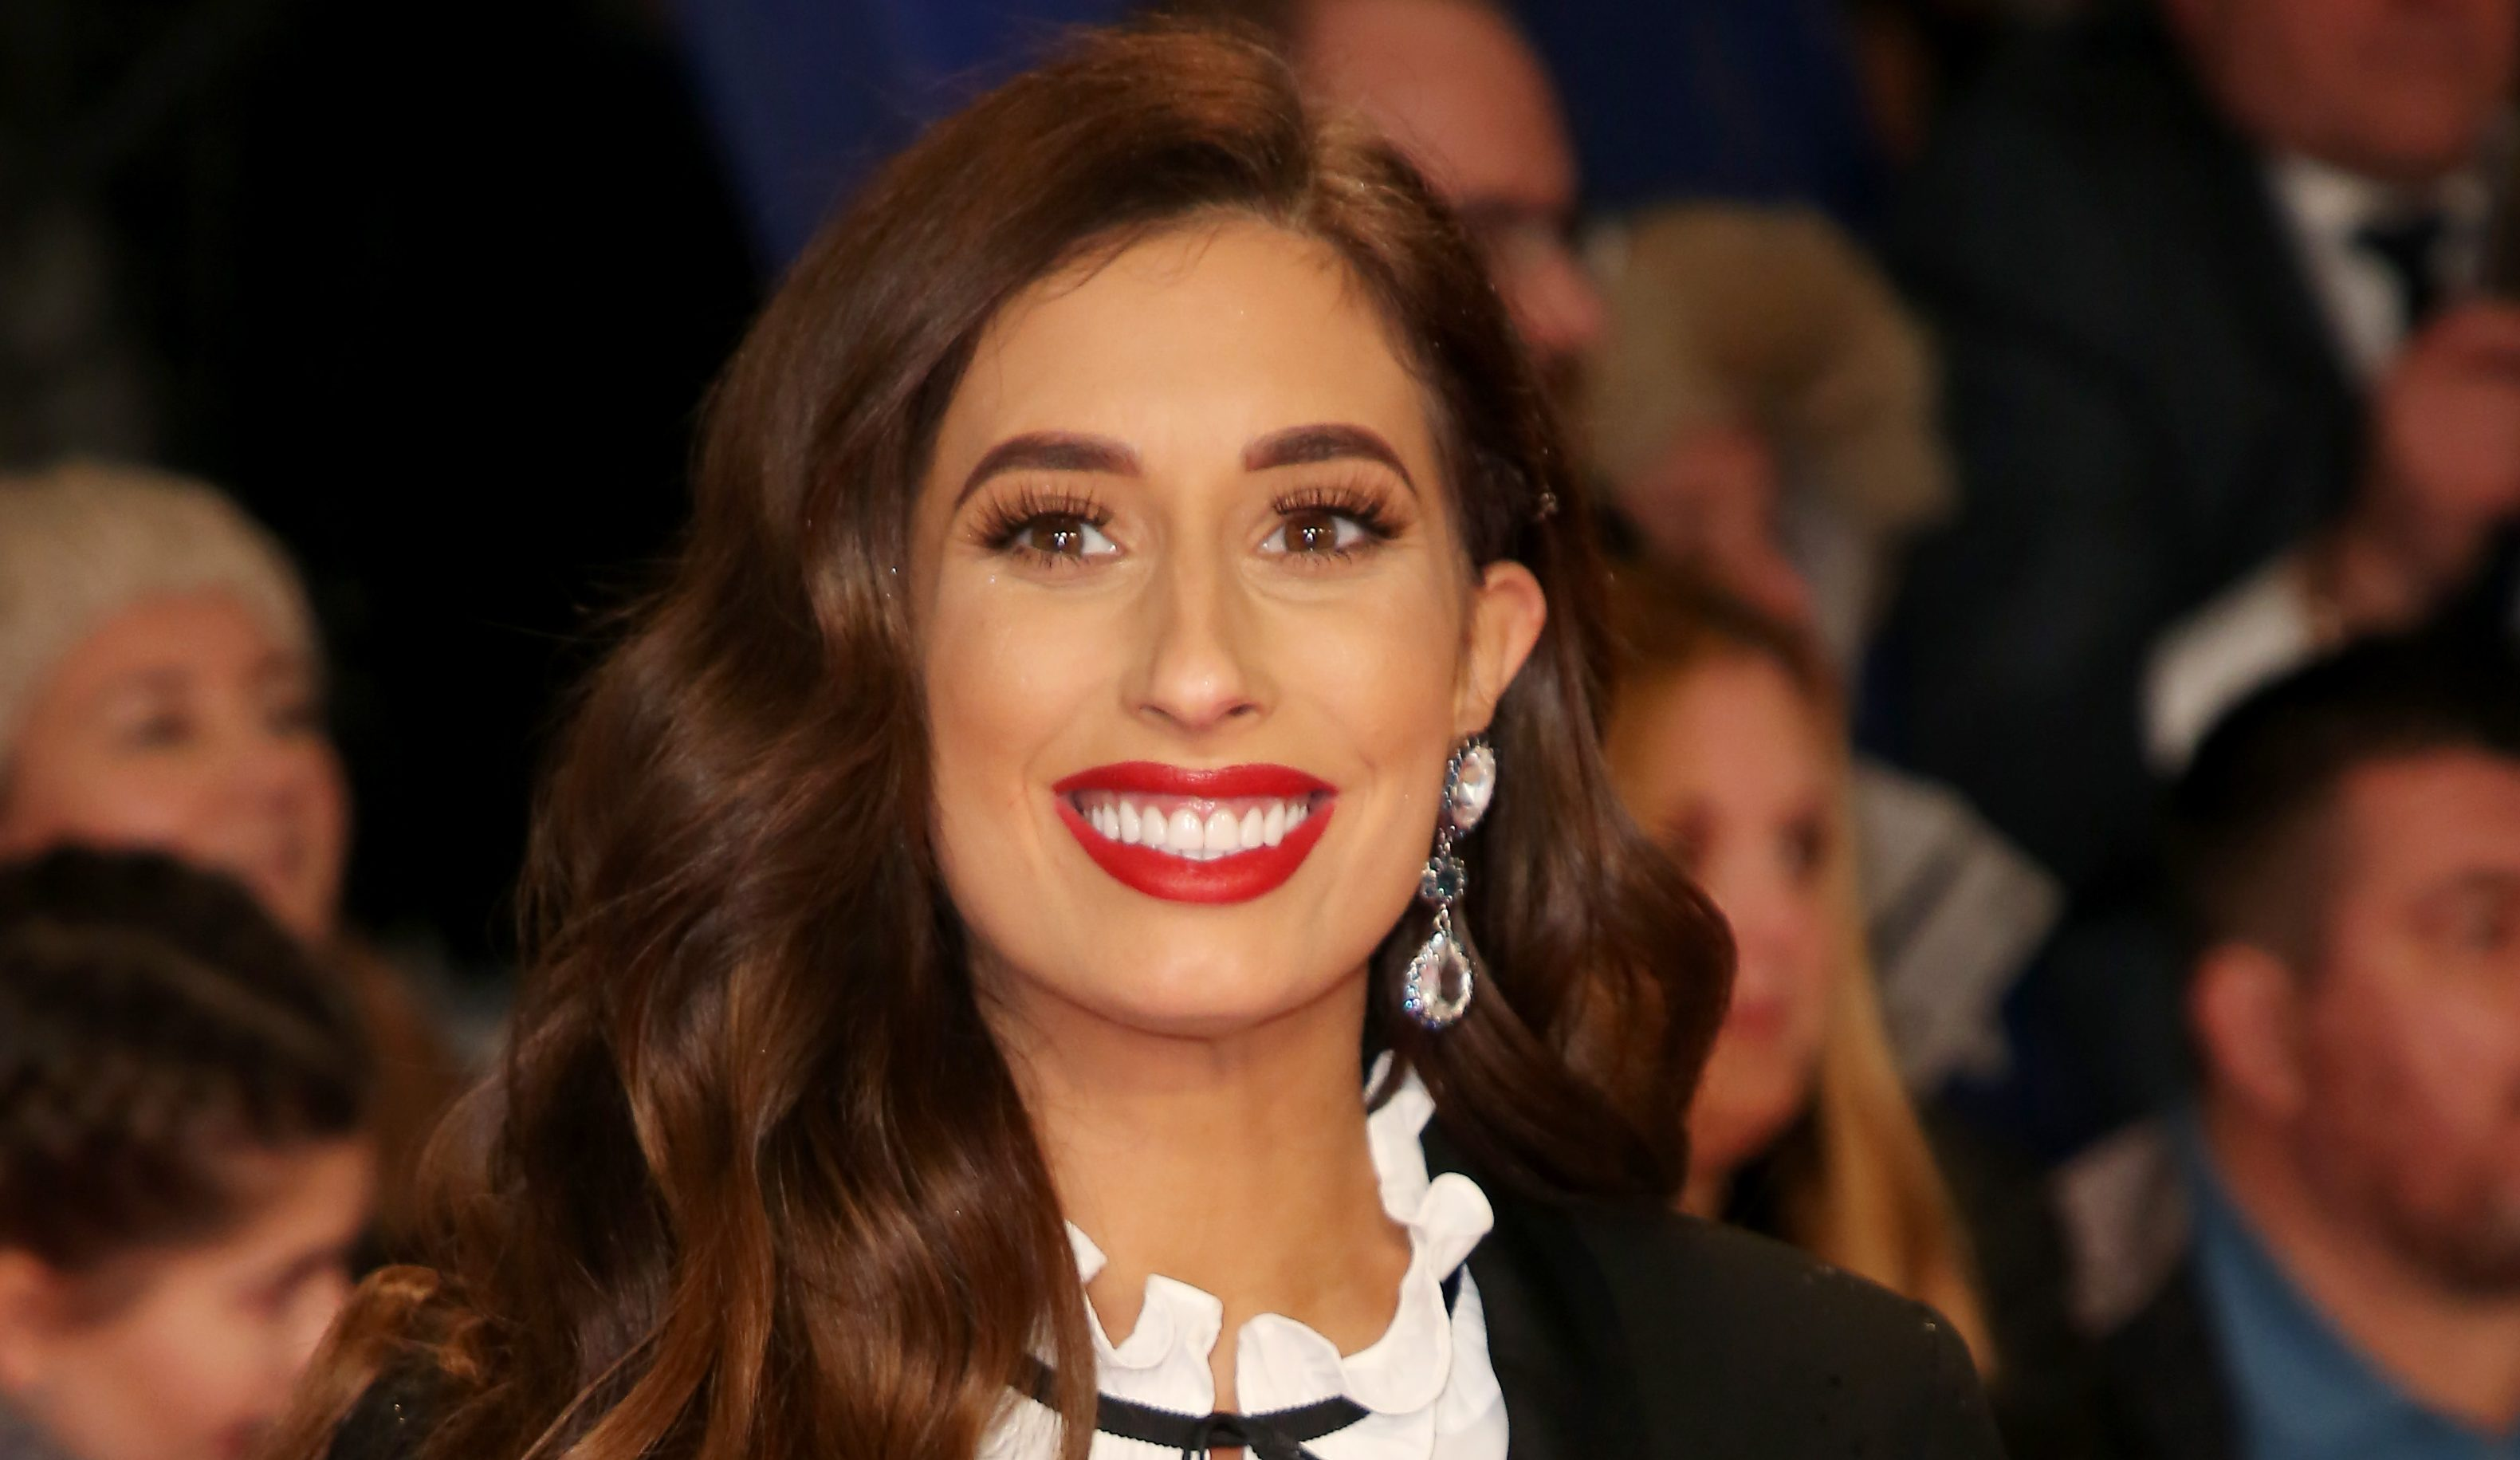 Stacey Solomon asks fans on social media for advice about baby Rex's eyes